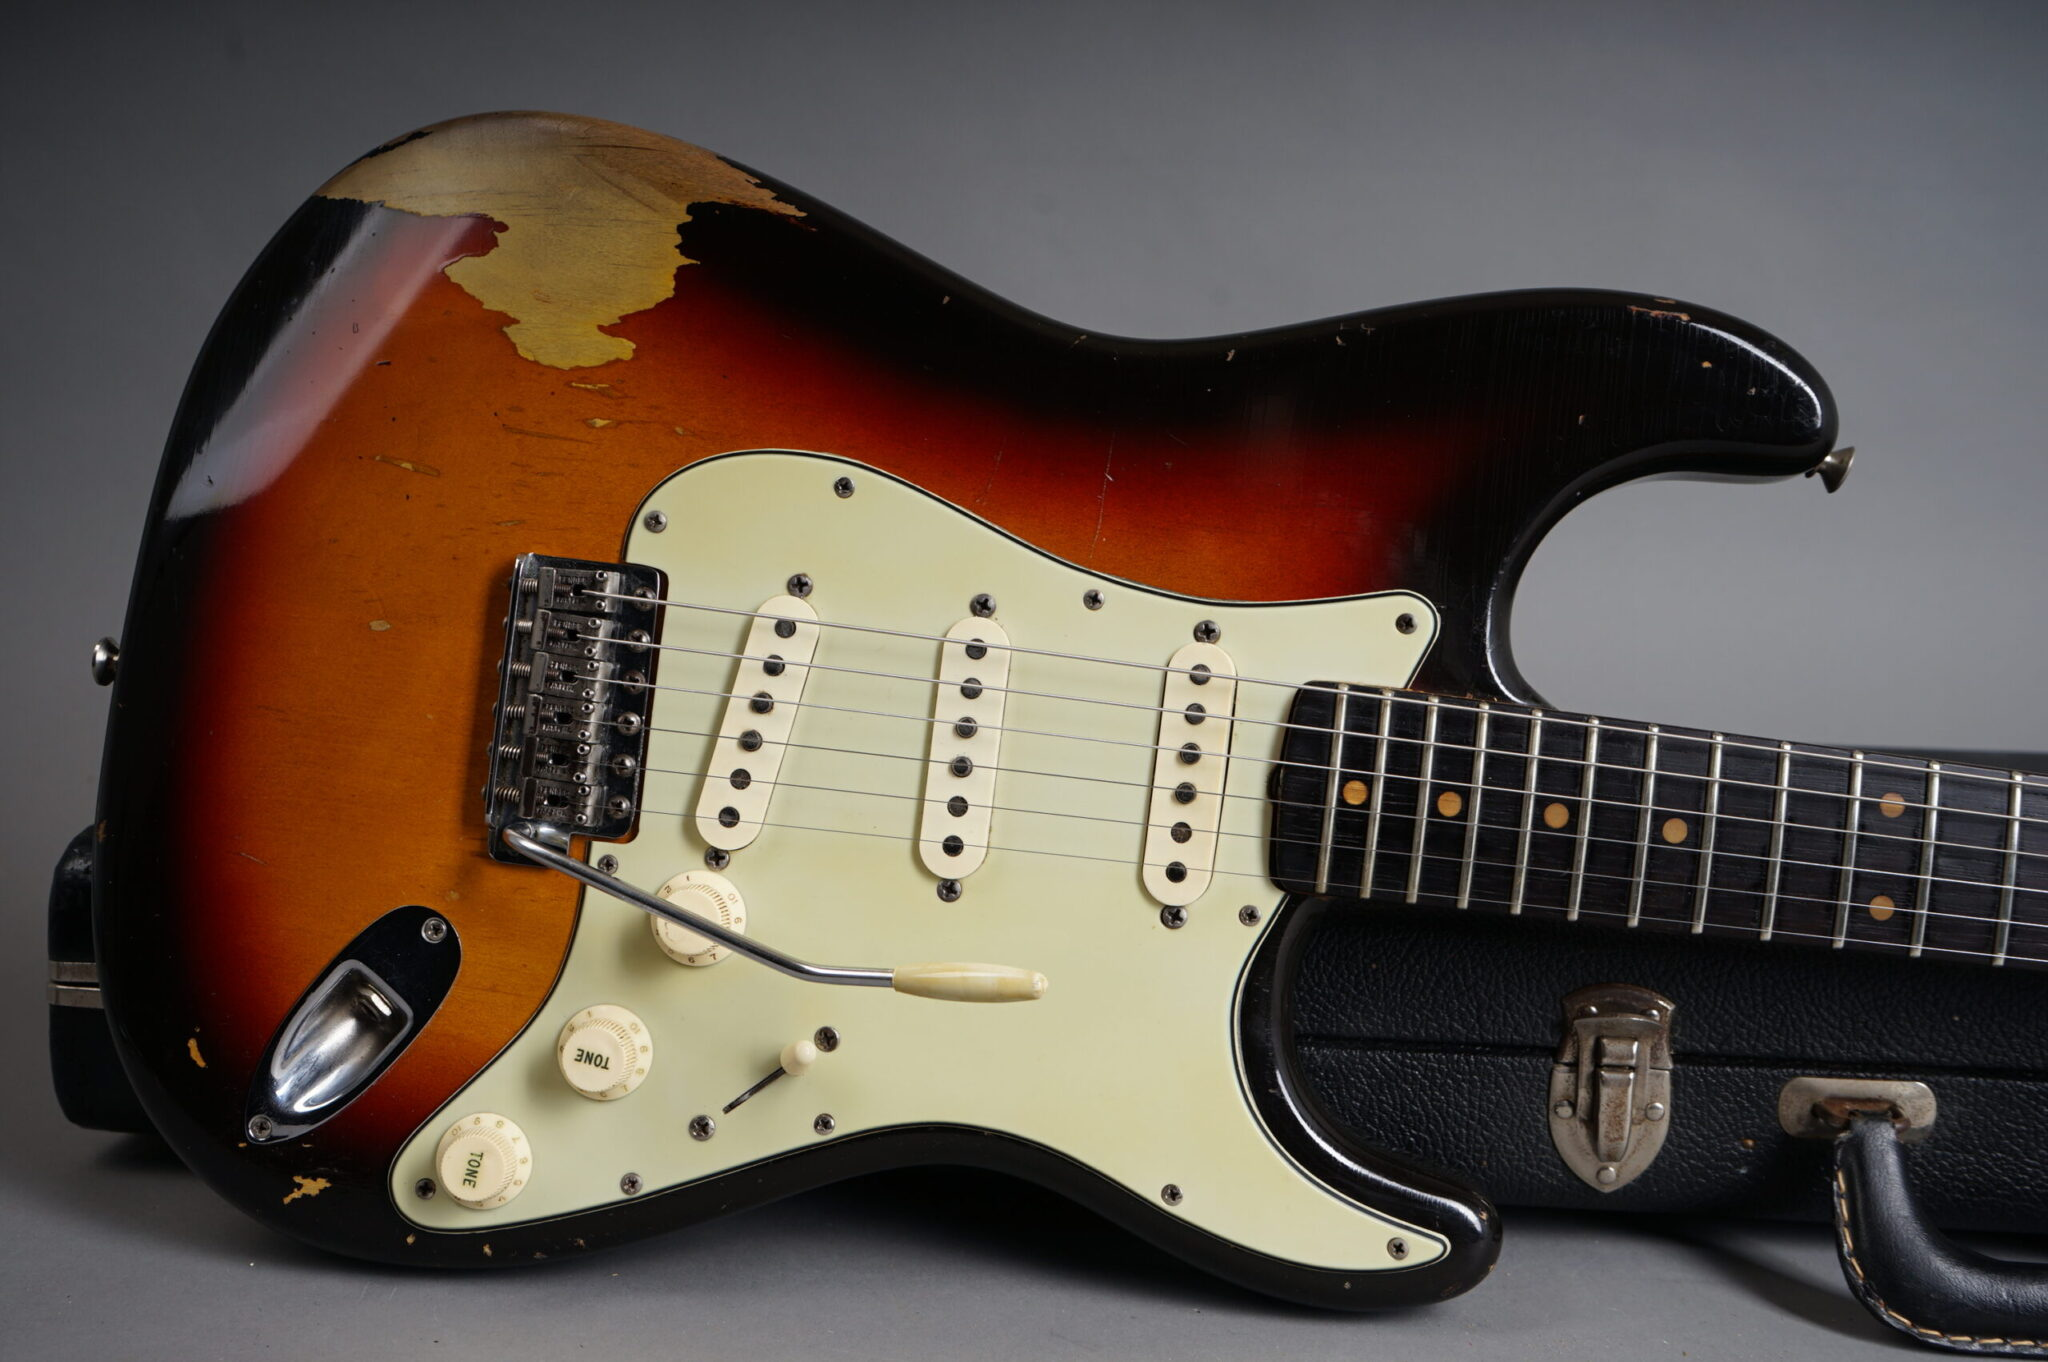 https://guitarpoint.de/app/uploads/products/1963-fender-stratocaster-sunburst-2/1963-Fender-Stratocaster-Sunburst-96633-9-scaled-2048x1362.jpg